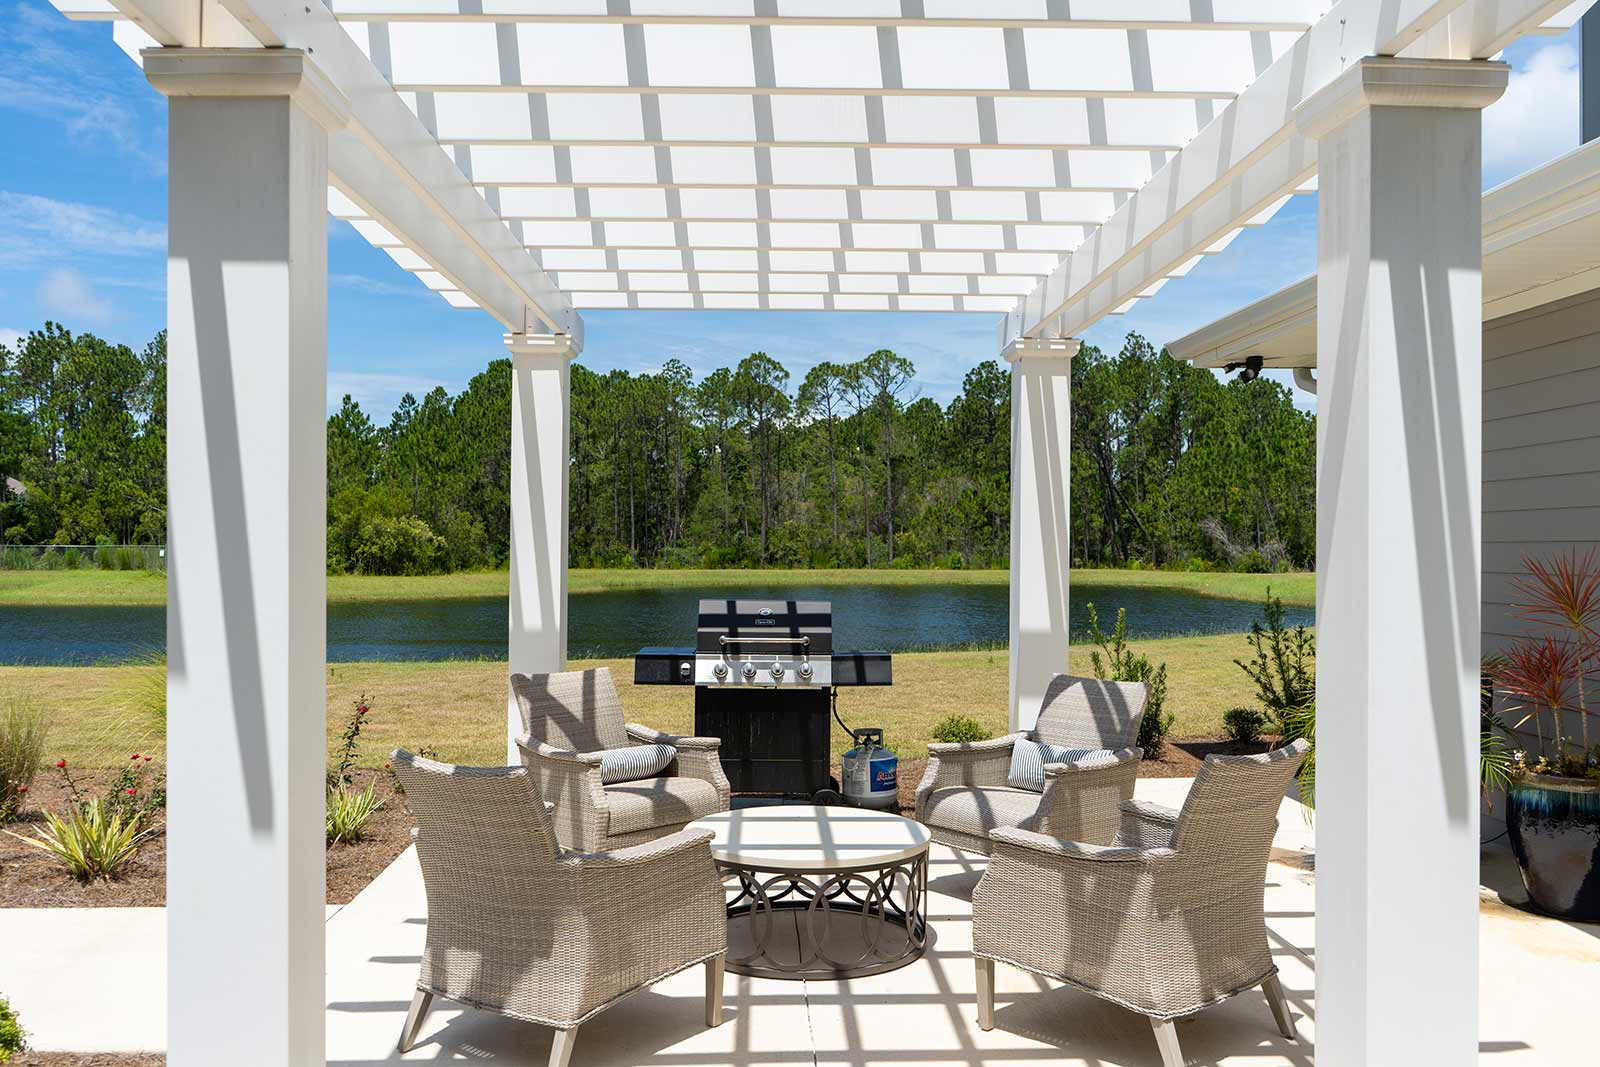 Grill And Patio Furniture Under Pergola At Seagrass Village Of Panama City Beach